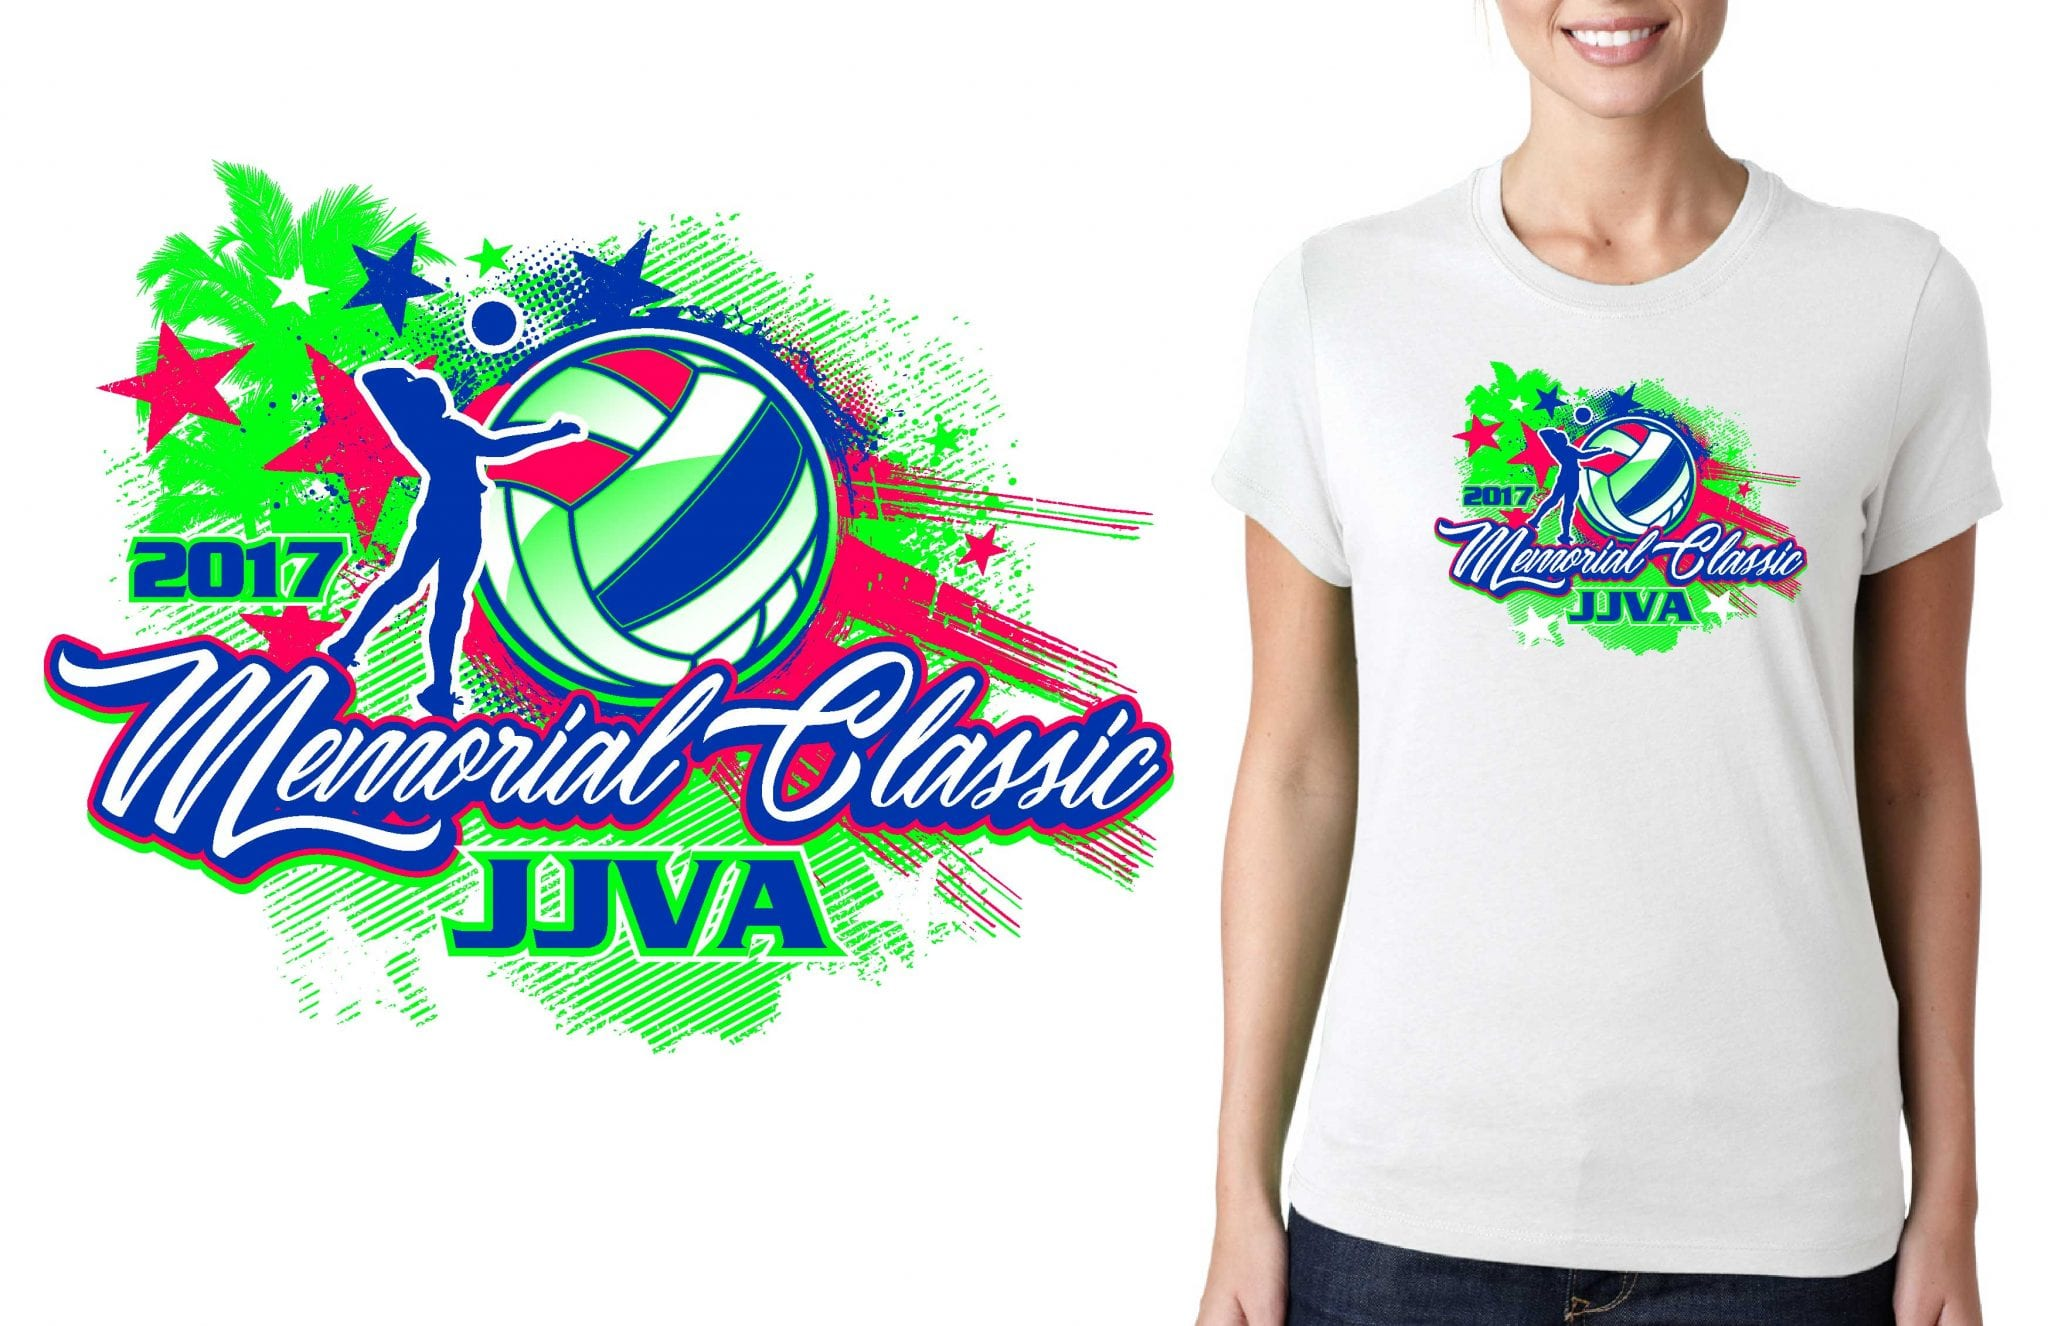 PRINT 5.20.21.17 Memorial Classic vector logo design for t-shirt volleyball urartstudio.com